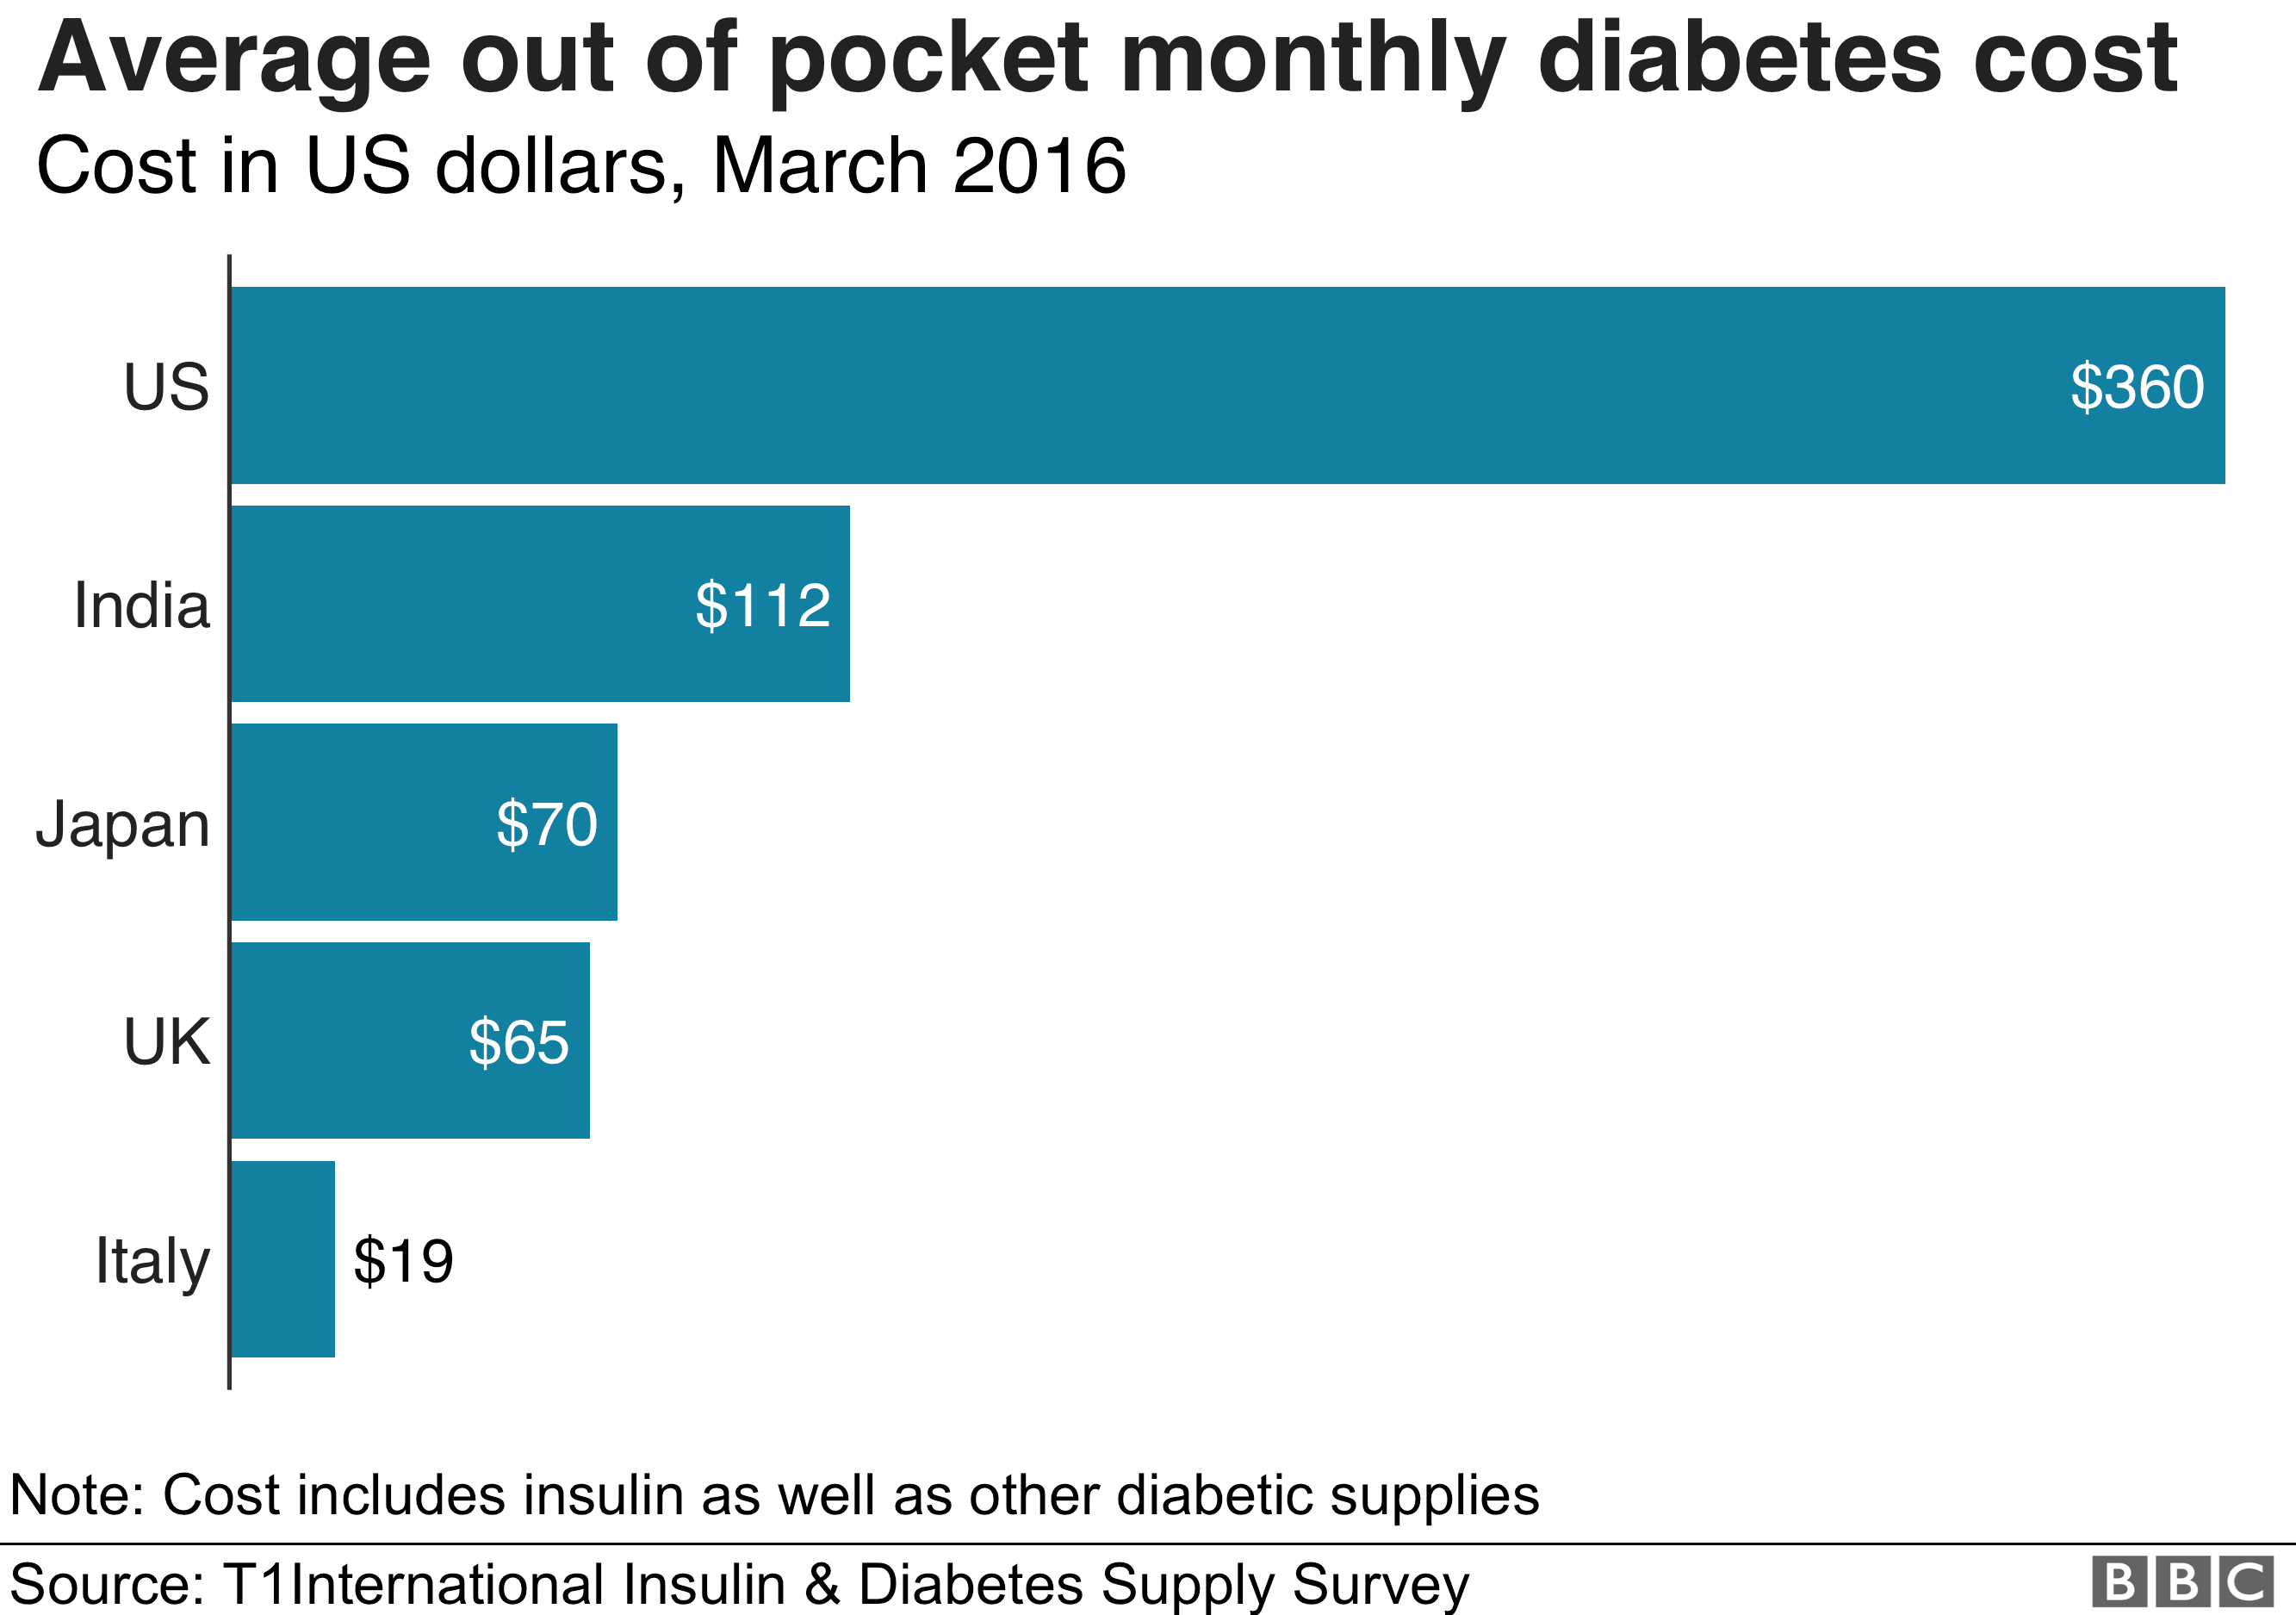 Graph showing average cost for a diabetic (insulin and other supplies) per month in Italy ($19), UK ($65), Japan ($70), India ($112) and US ($360)